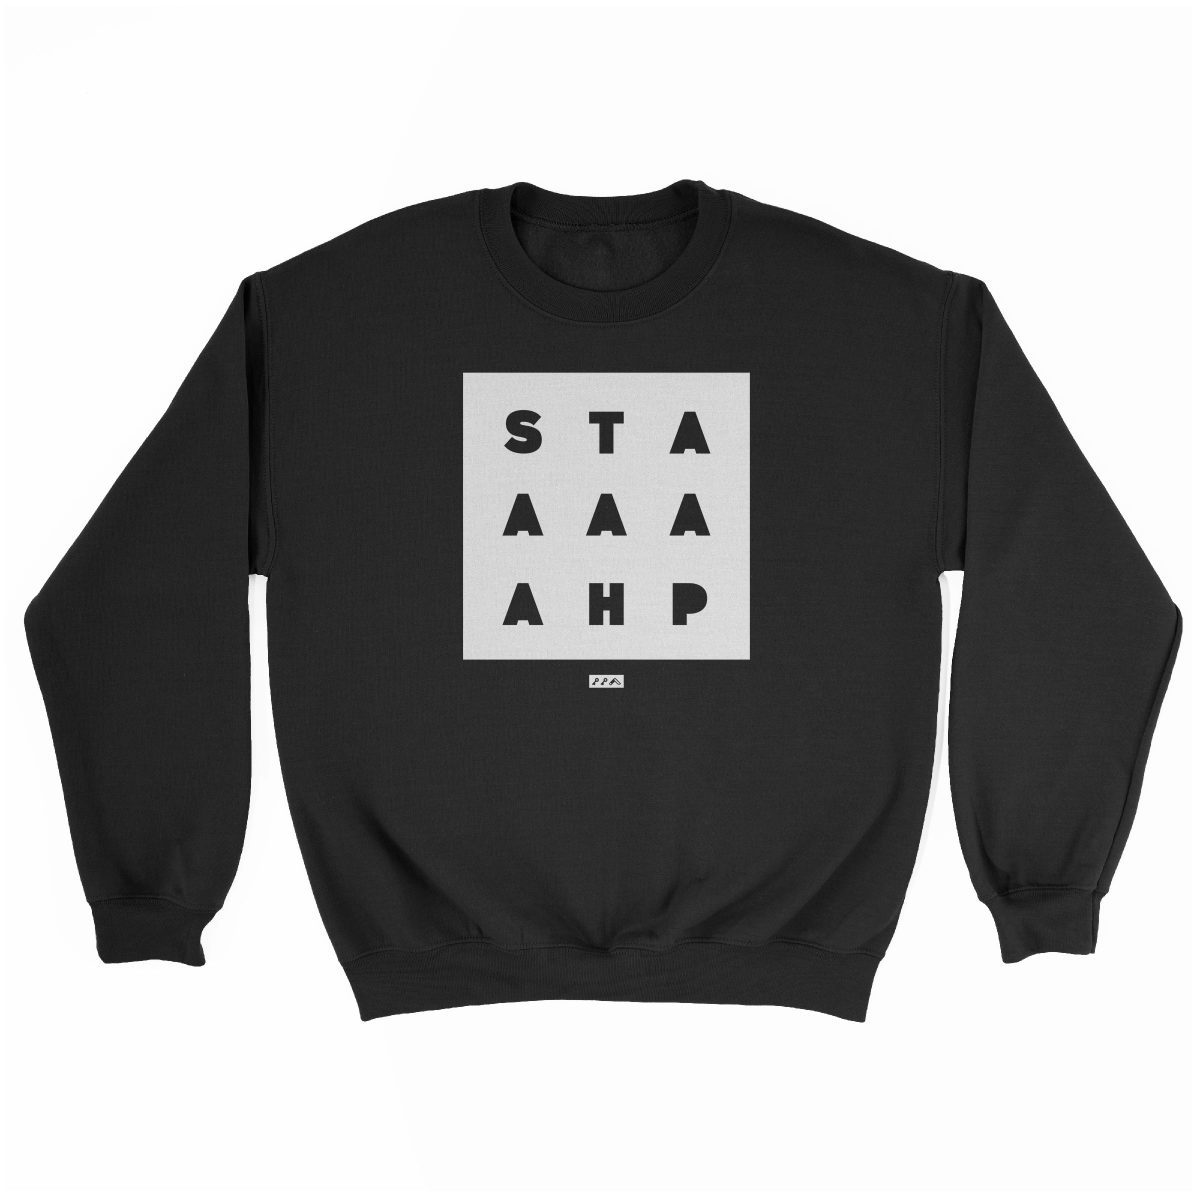 """STAAAAAHP"" funny philly slang sweatshirt in black"